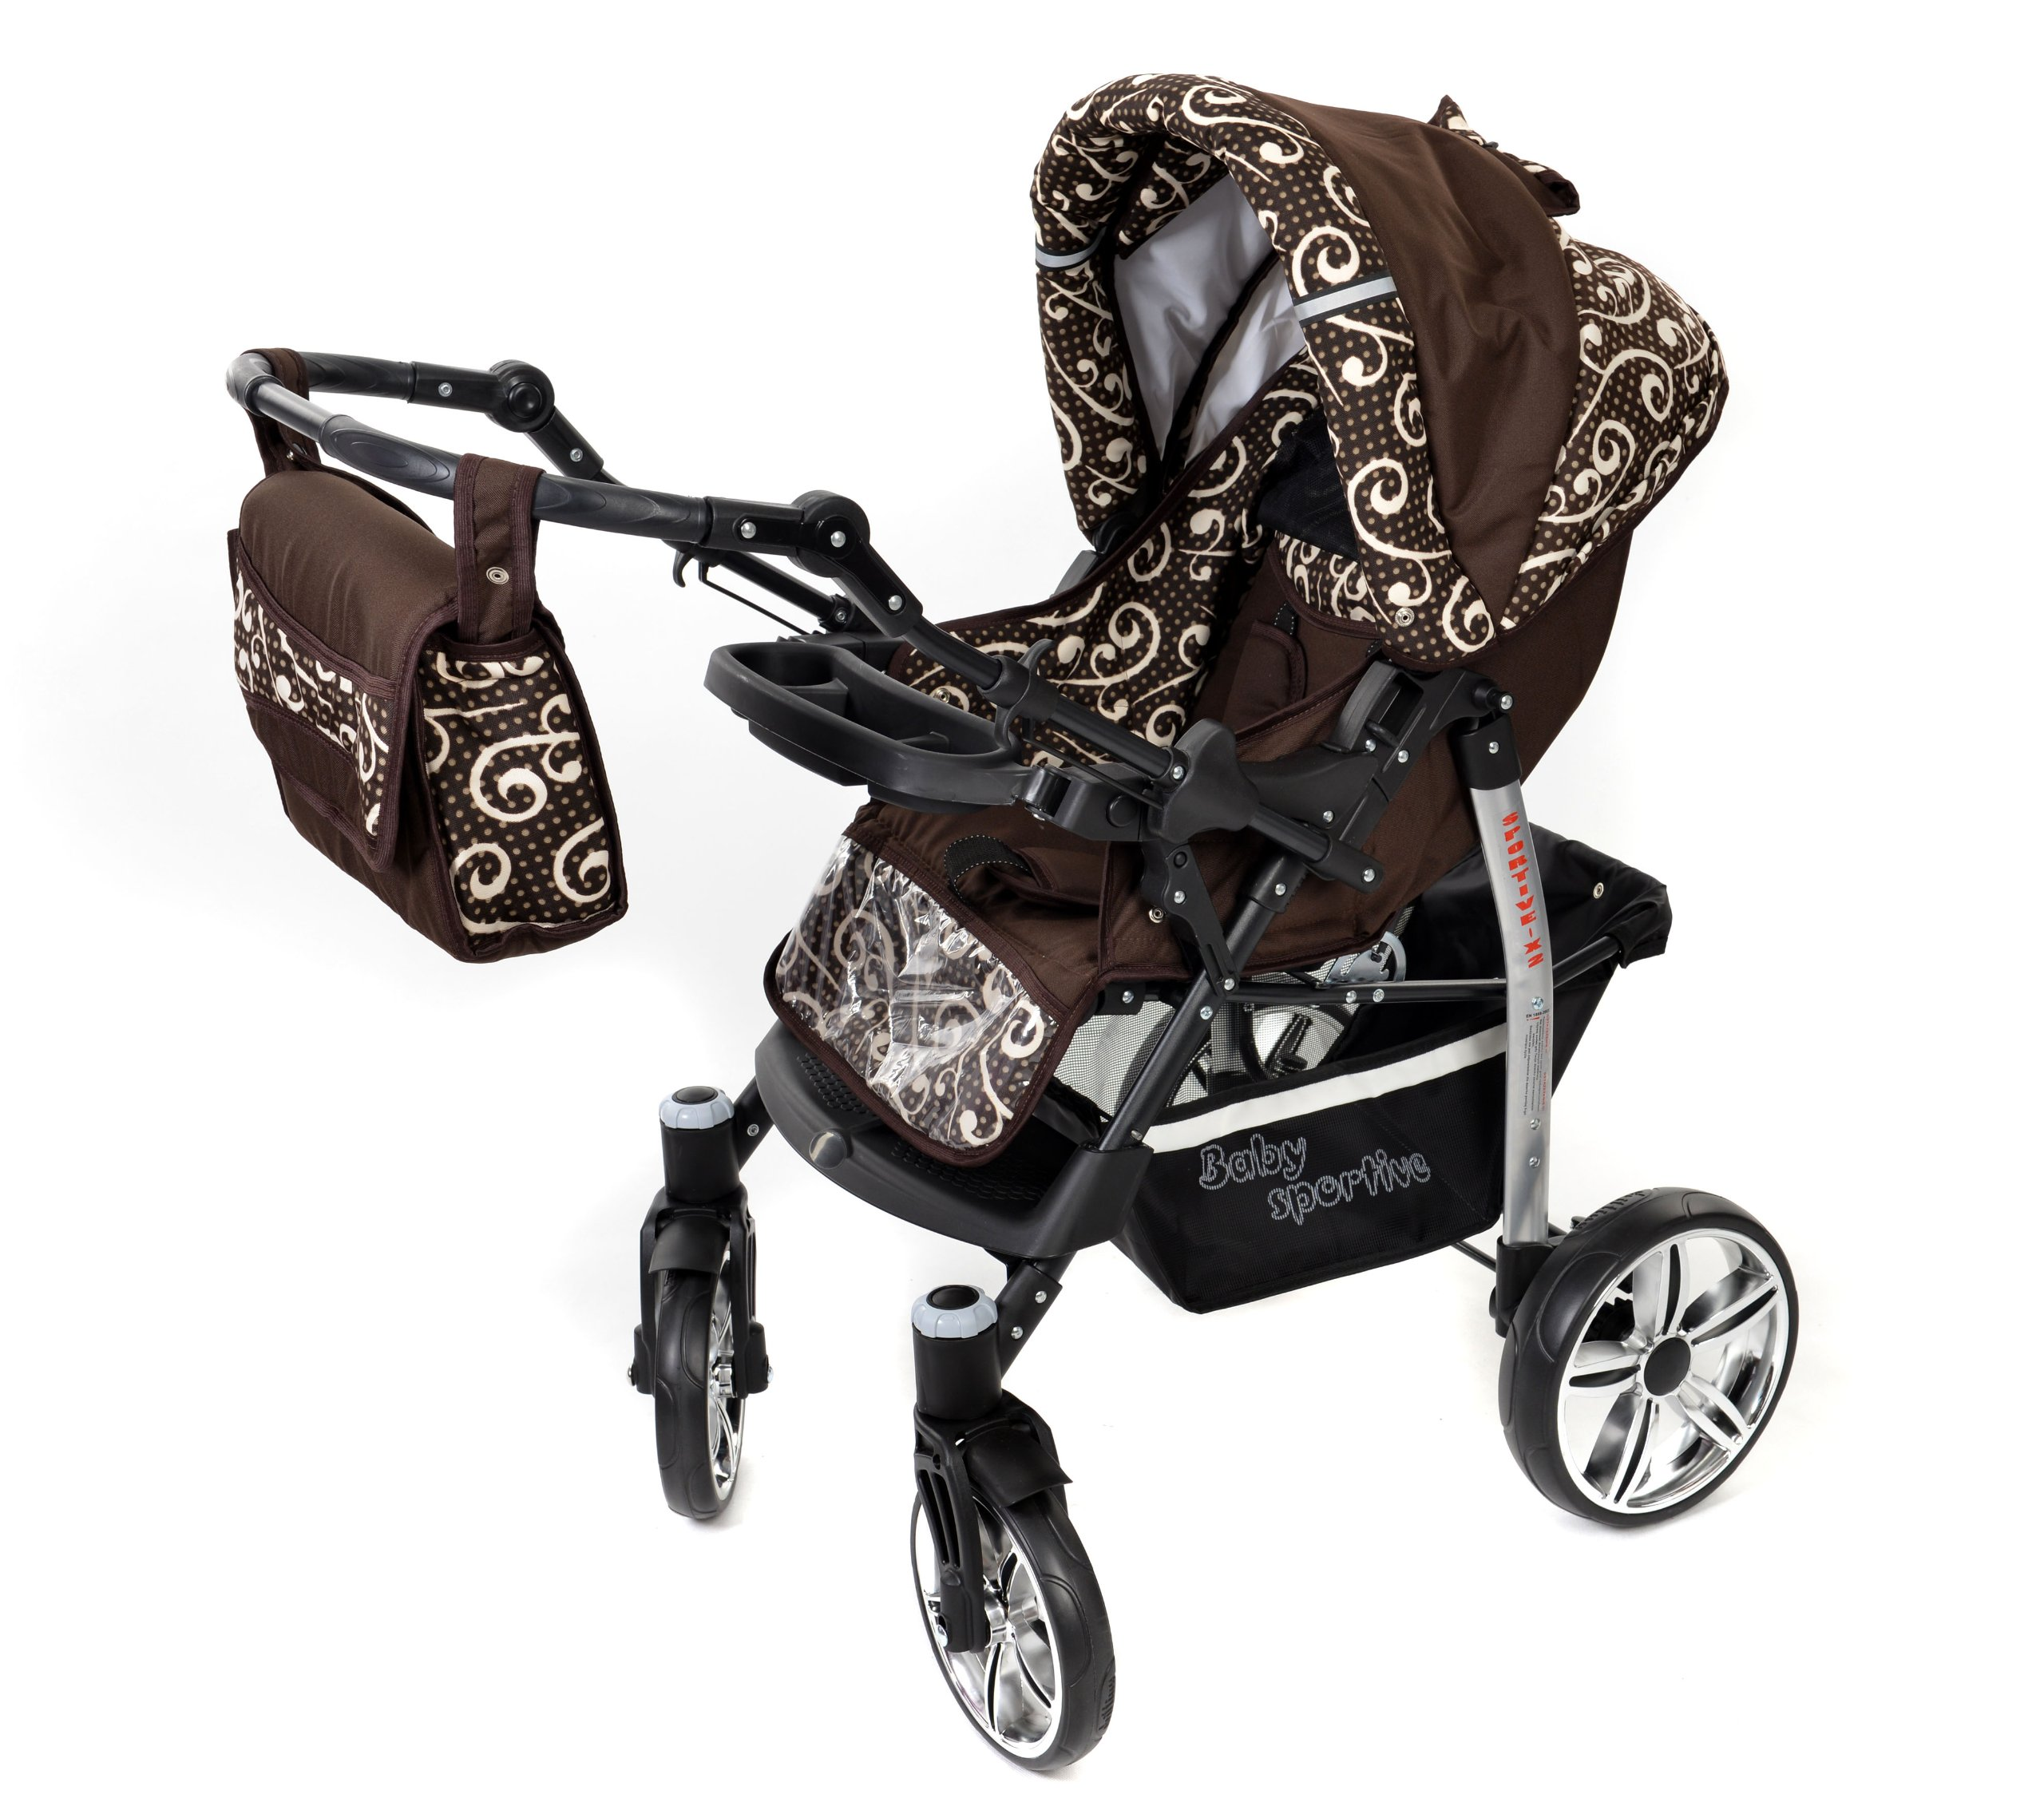 Sportive X2, 3-in-1 Travel System incl. Baby Pram with Swivel Wheels, Car Seat, Pushchair & Accessories (3-in-1 Travel System, Brown & Wawy Lines)  3 in 1 Travel System All in One Set - Pram, Car Carrier Seat and Sport Buggy + Accessories: carrier bag, rain protection, mosquito net, changing mat, removable bottle holder and removable tray for your child's bits and pieces Suitable from birth, Easy Quick Folding System; Large storage basket; Turnable handle bar that allows to face or rear the drive direction; Quick release rear wheels for easy cleaning after muddy walks Front lockable 360o swivel wheels for manoeuvrability , Small sized when folded, fits into many small car trunks, Carry-cot with a removable hood, Reflective elements for better visibility 5